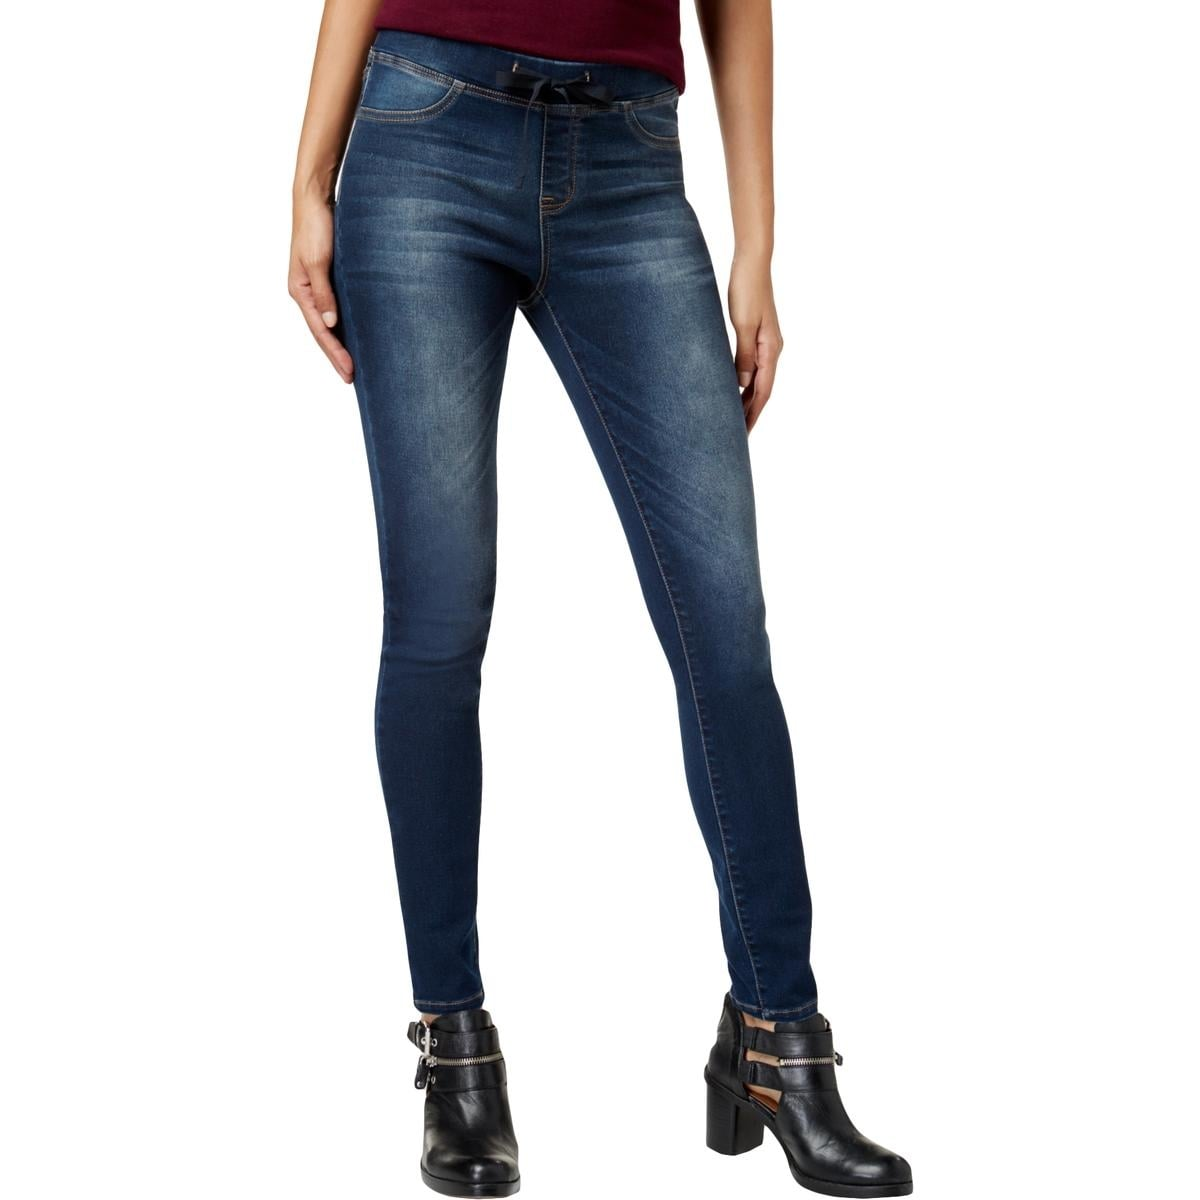 55447a54e3400 Shop Black Daisy Womens Shay Jeggings Dark Wash Low Rise - Free Shipping On  Orders Over $45 - Overstock - 27135043